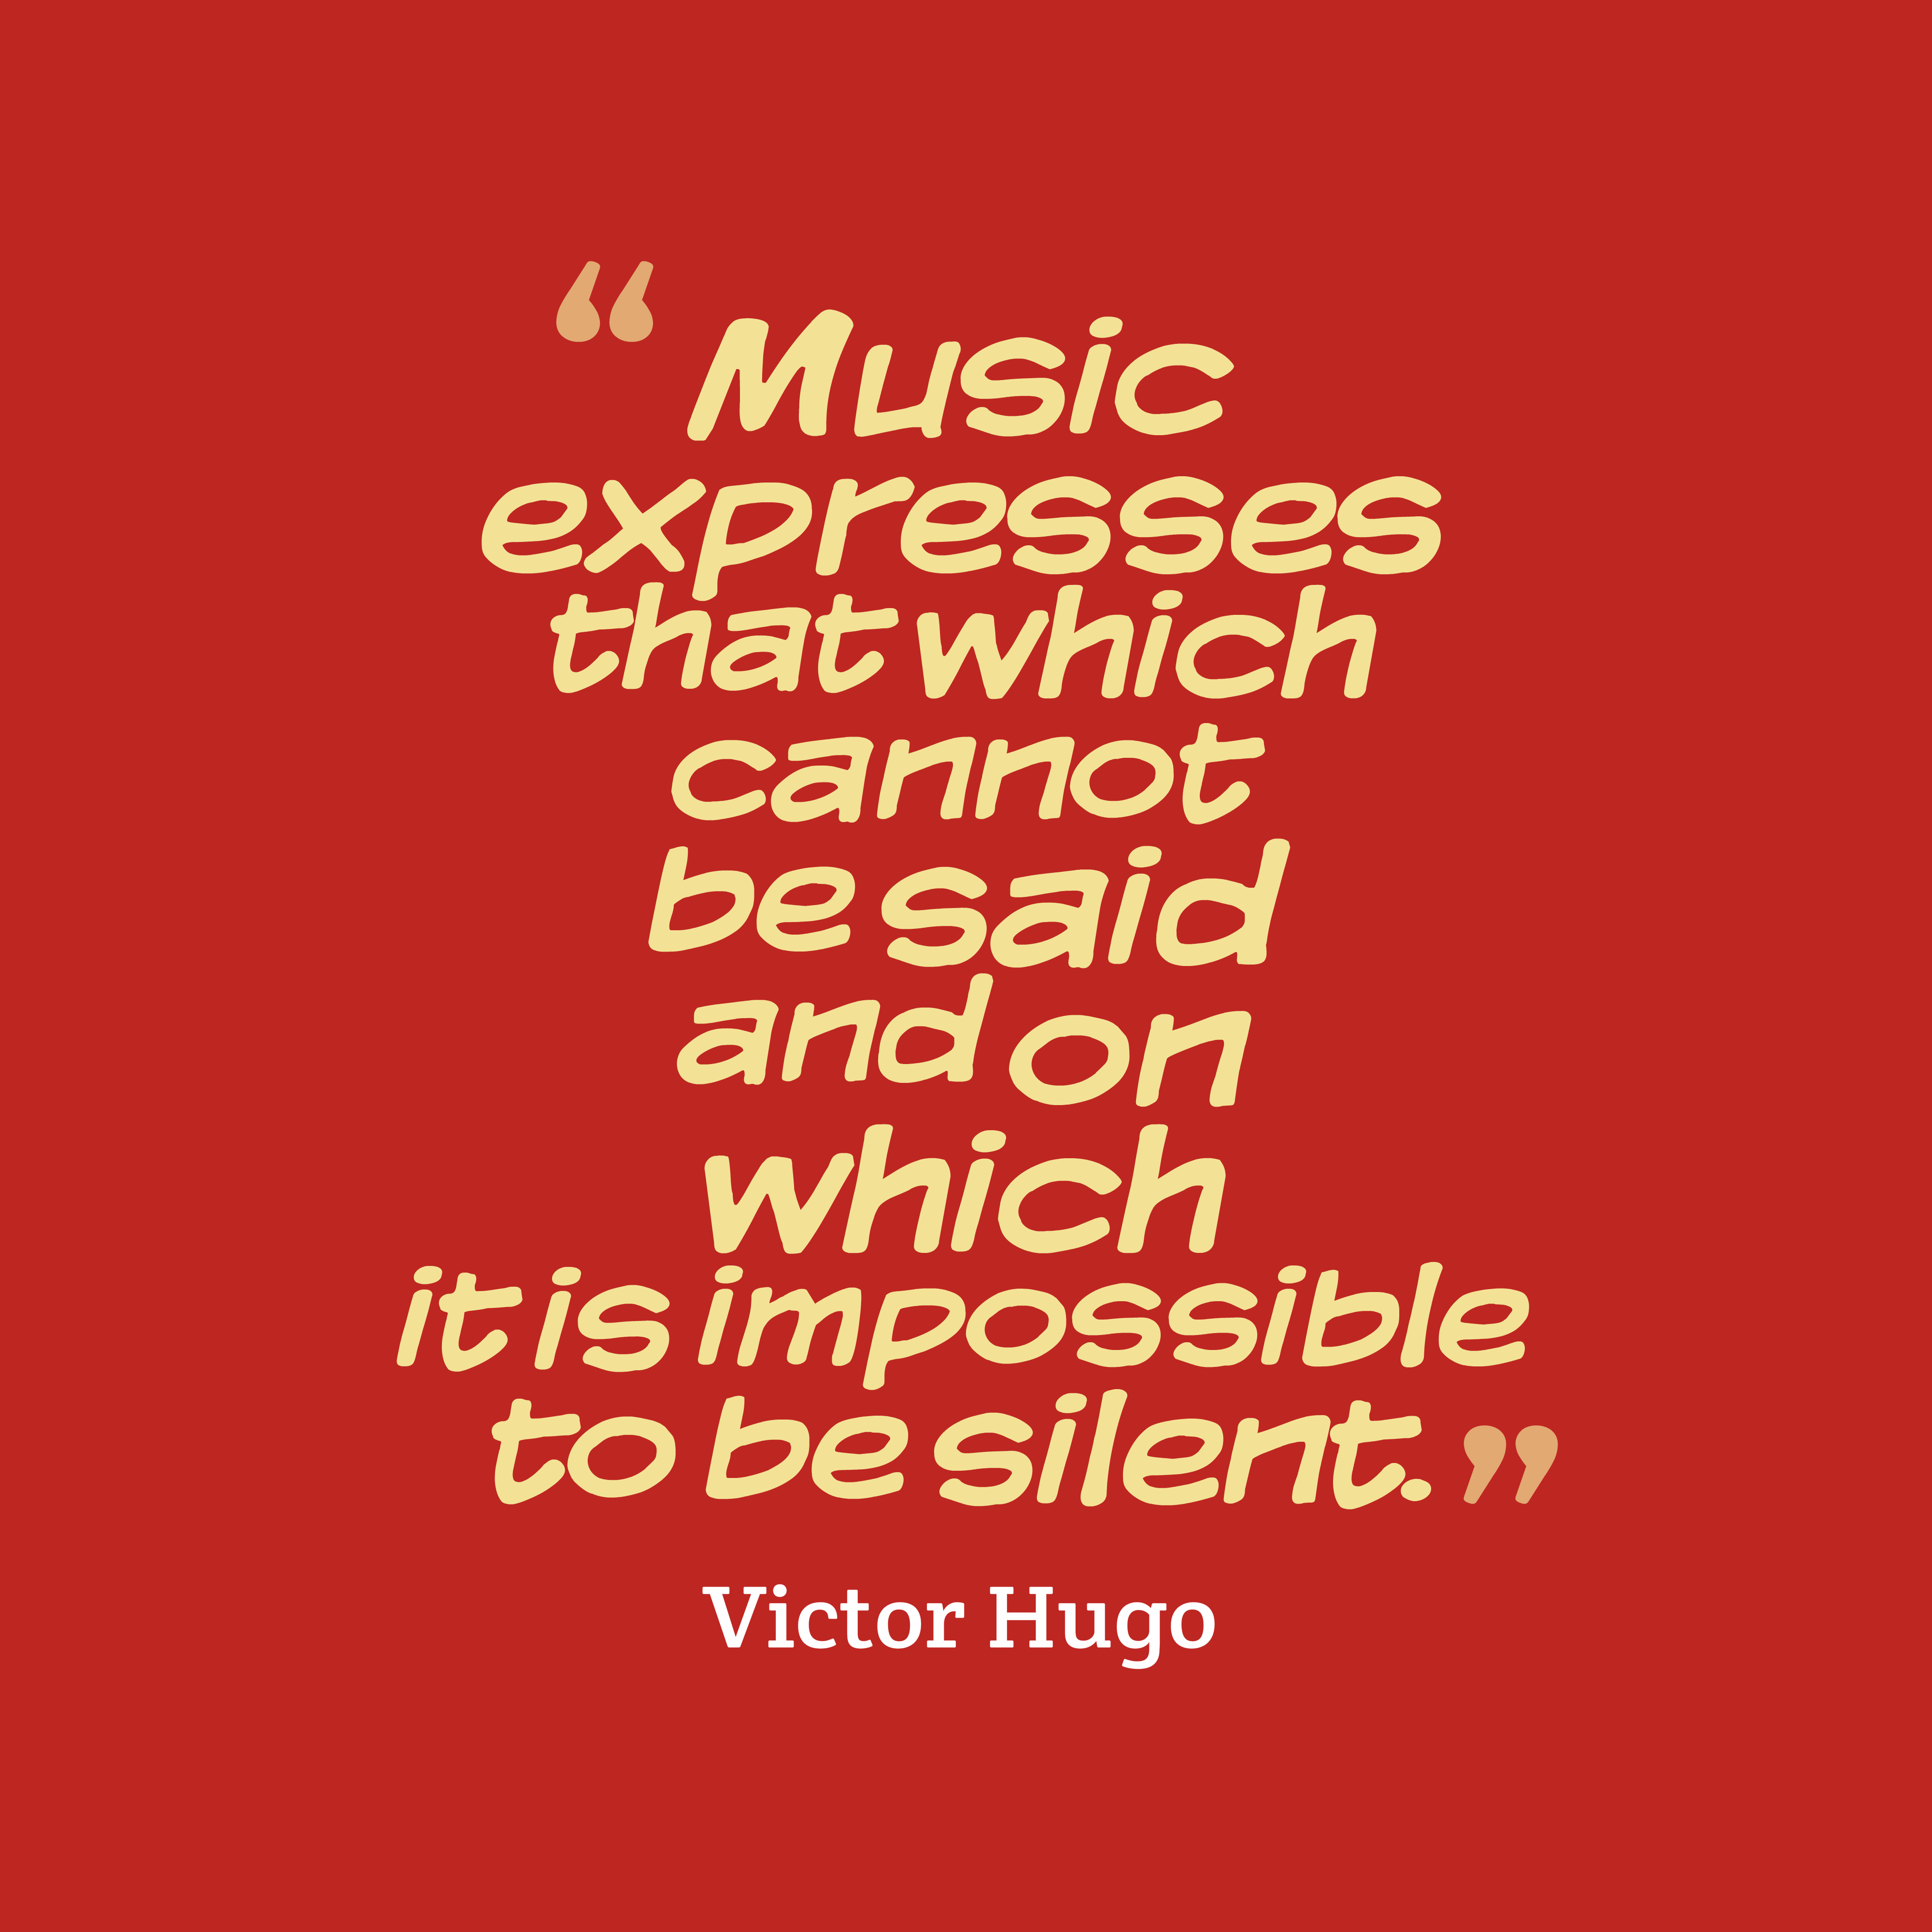 Quotes image of Music expresses that which cannot be said and on which it is impossible to be silent.